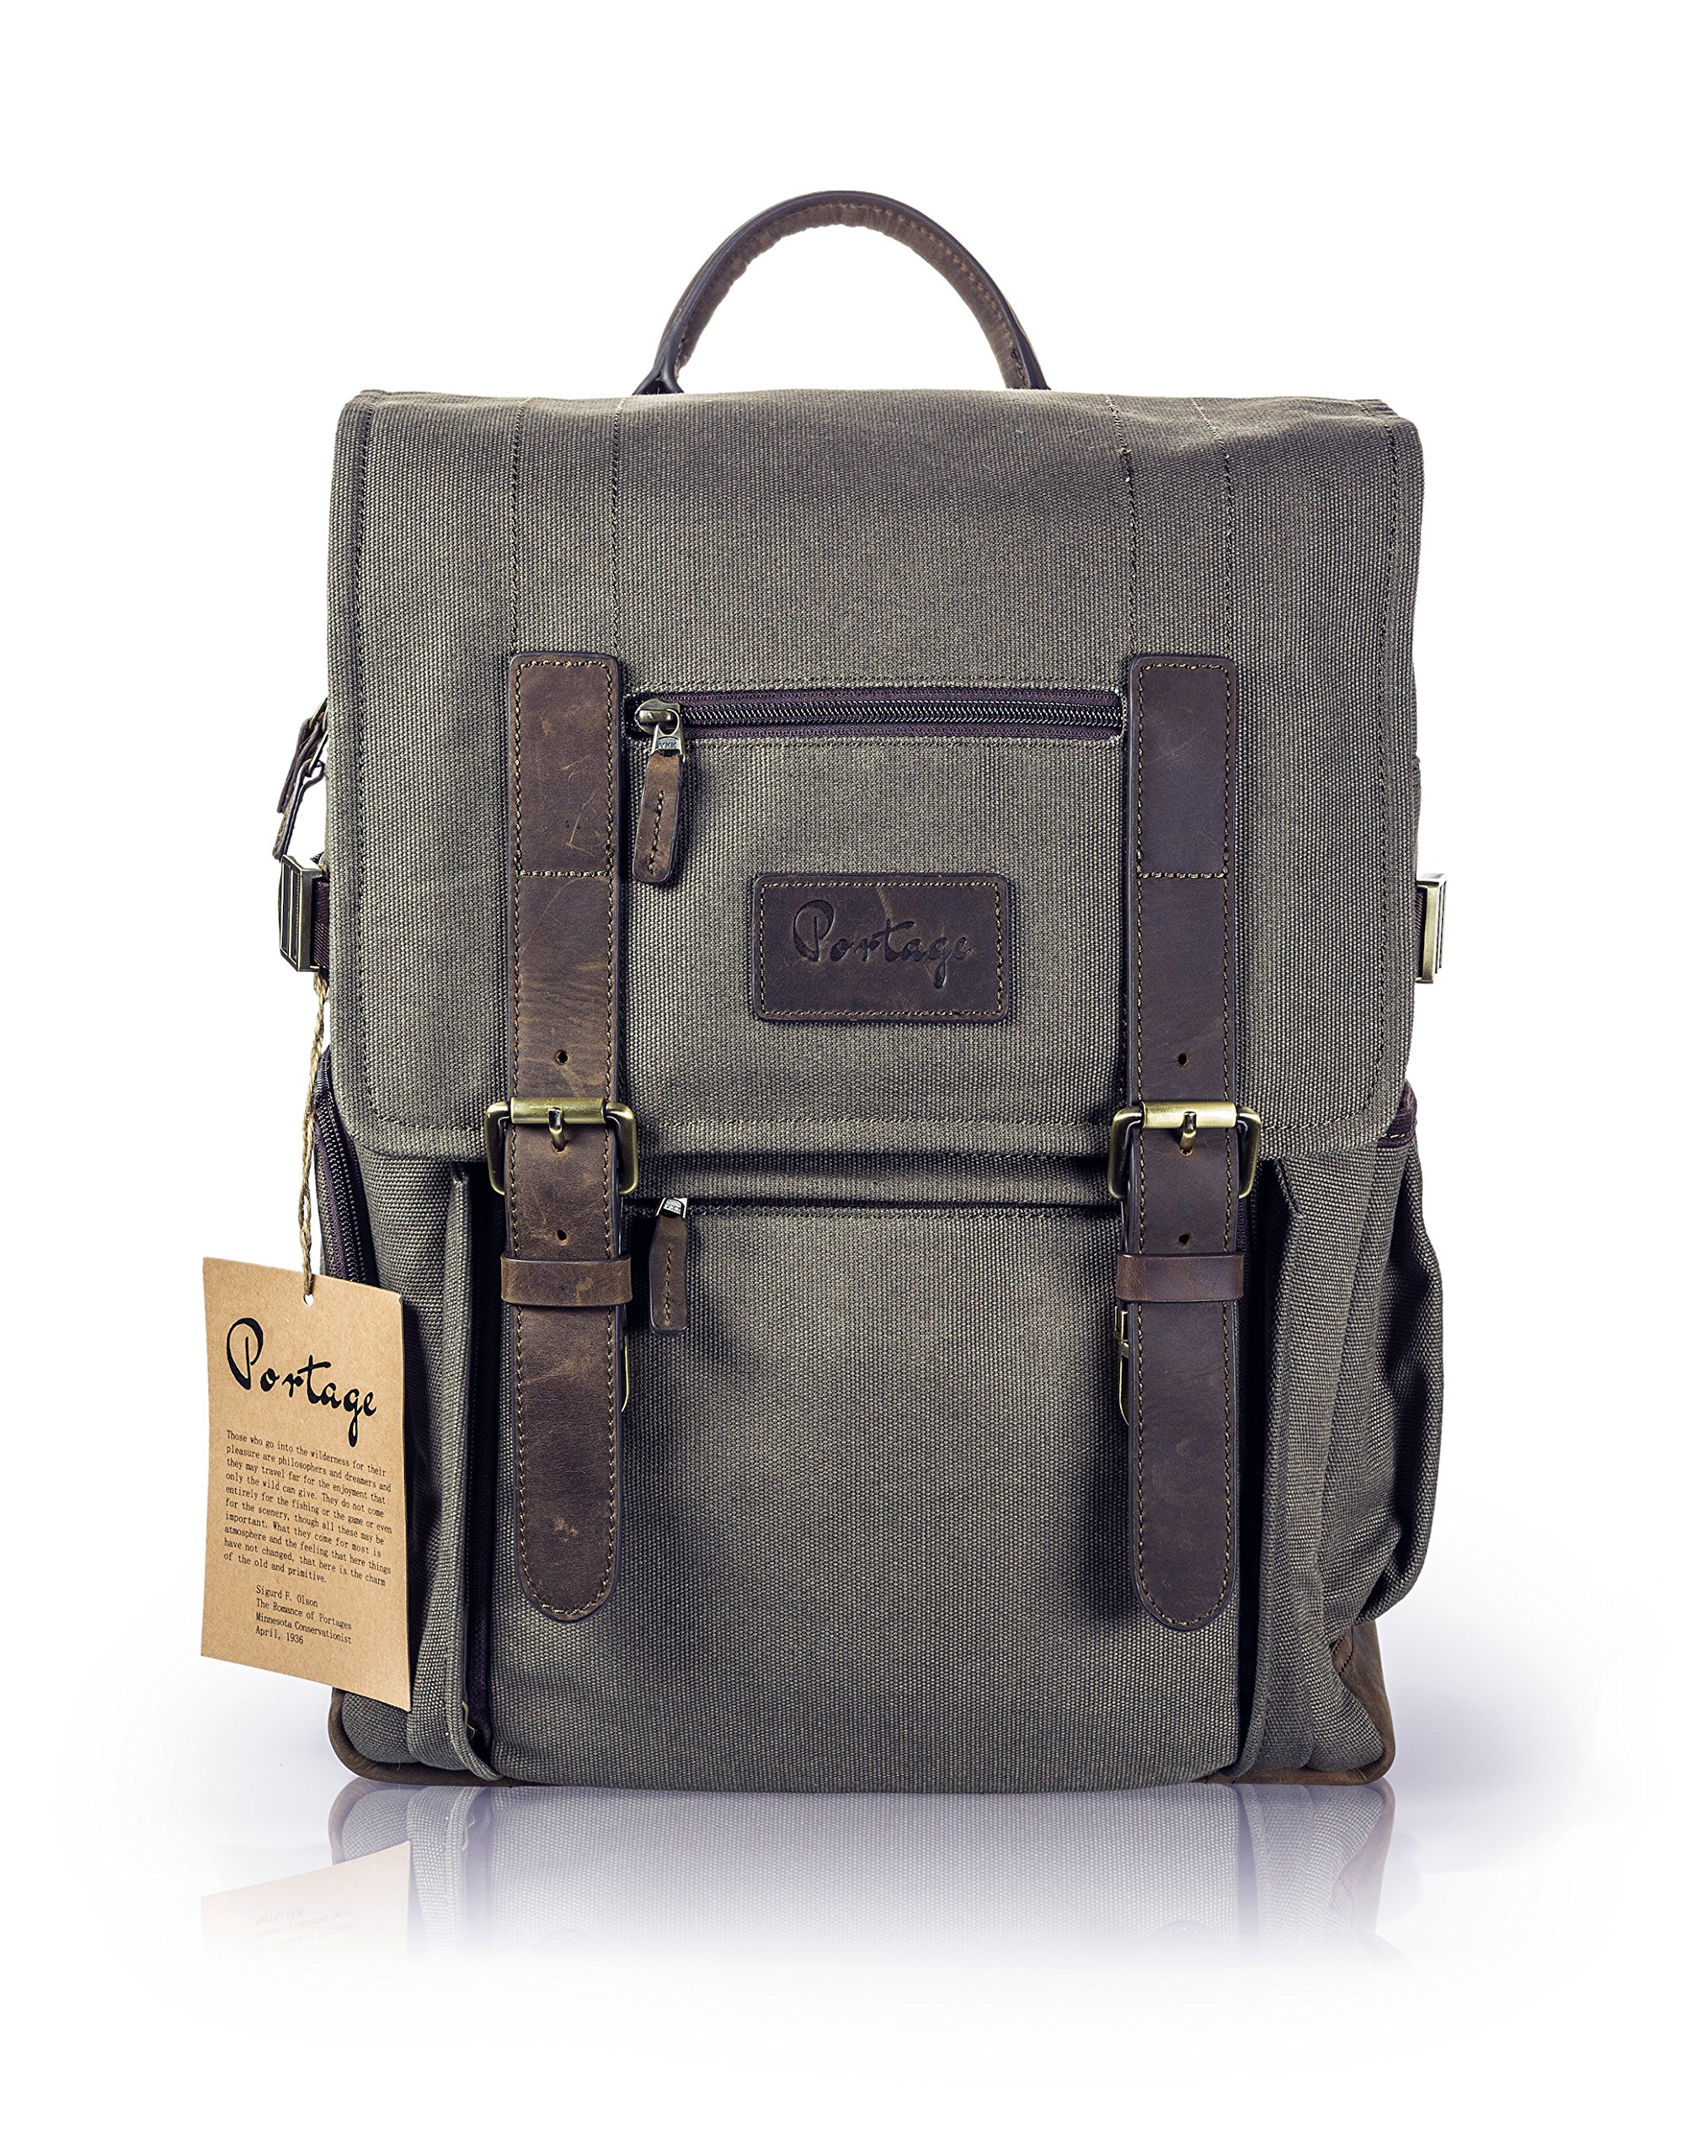 The Kenora Backpack by Portage GEN3 W/ SIDE ACCESS! - Camera, Travel, Gear, Laptop Bag - Genuine Leather and Waxed Canvas by Portage Supply Co.